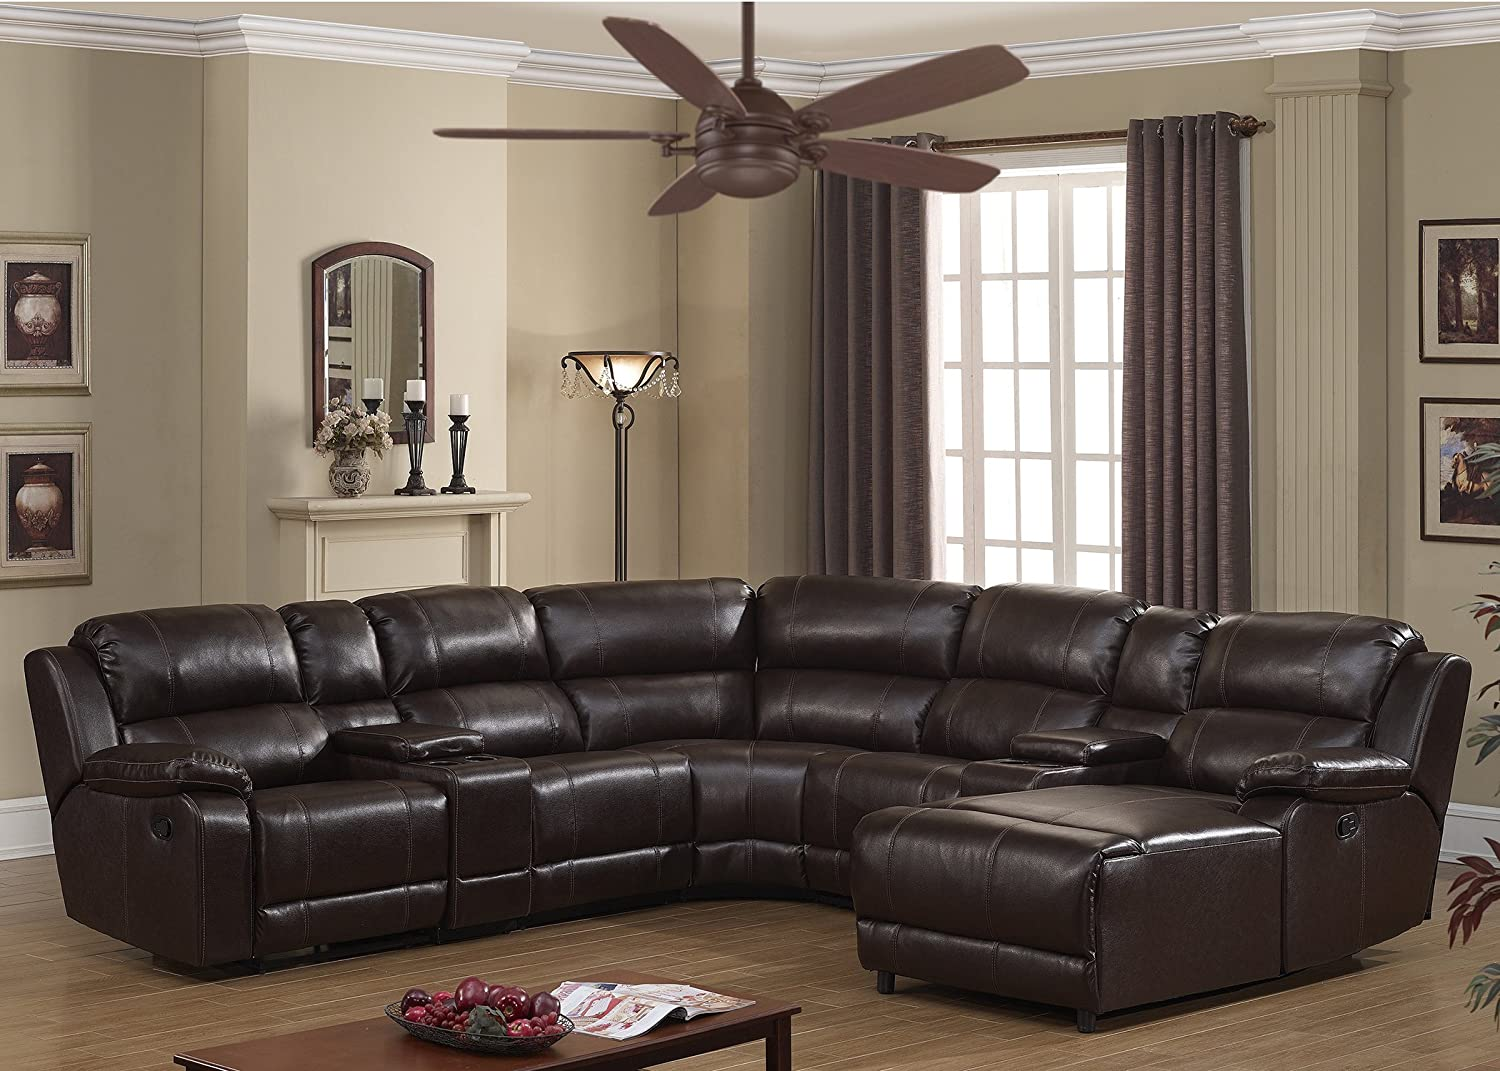 6-Piece Upholstered Leather Reclining Living Room Sectional Set with Dual Recliners, 2 Storage Consoles, and 4 Cup Holders, Dark Brown